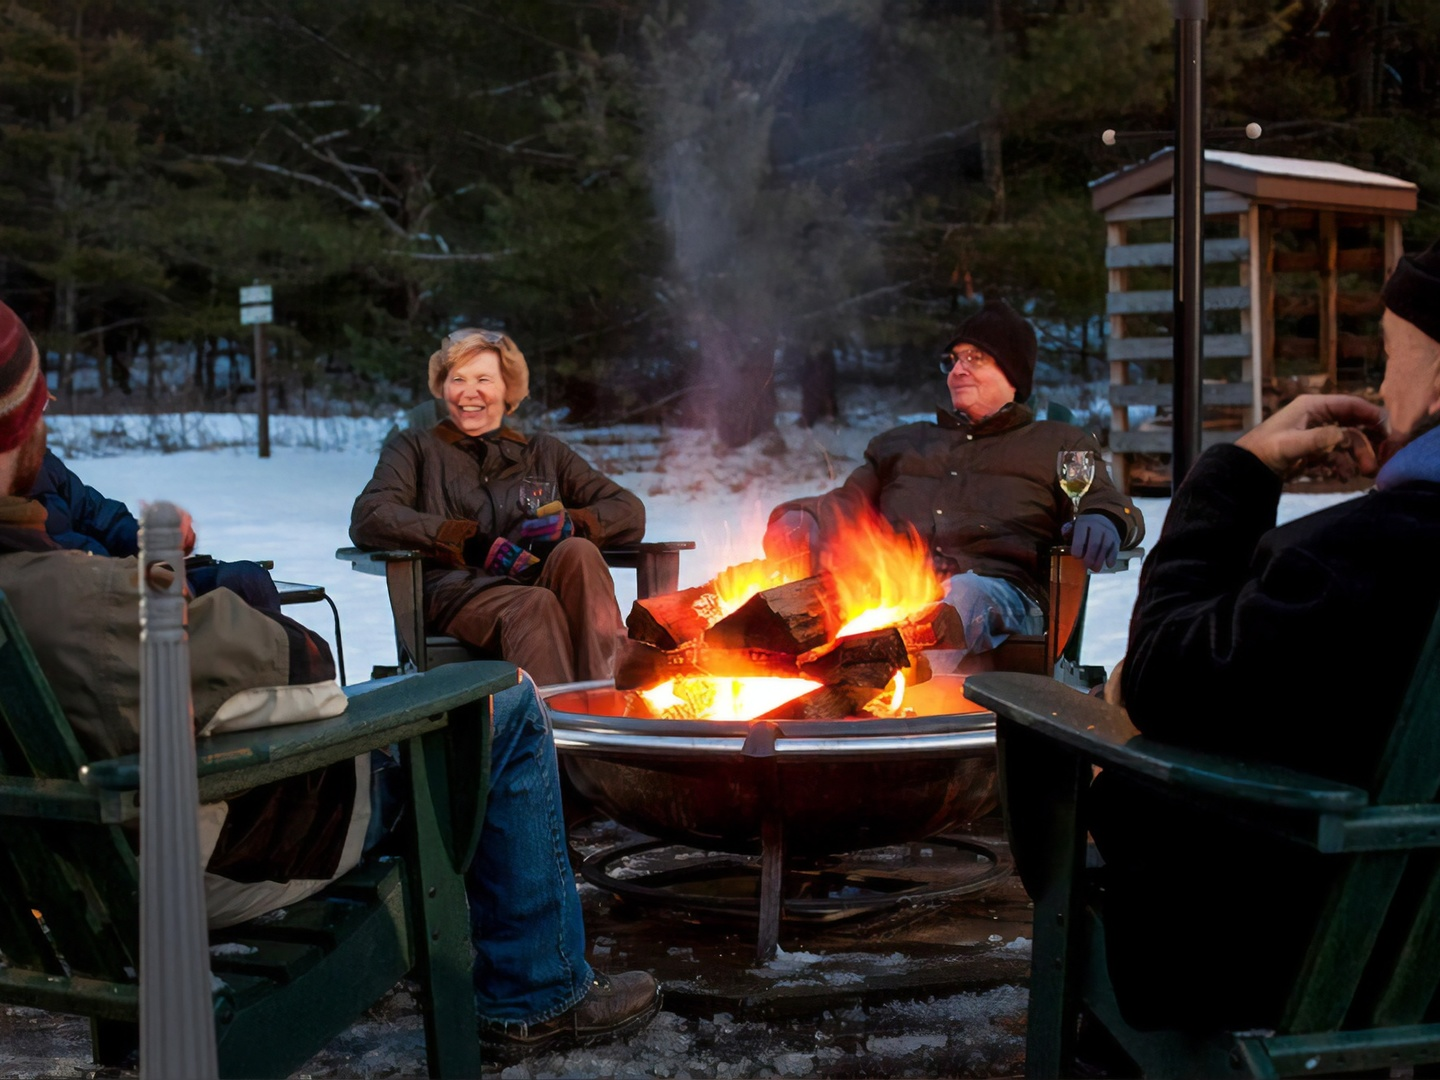 A group of people sitting around a fire at Inn at Lake Joseph.